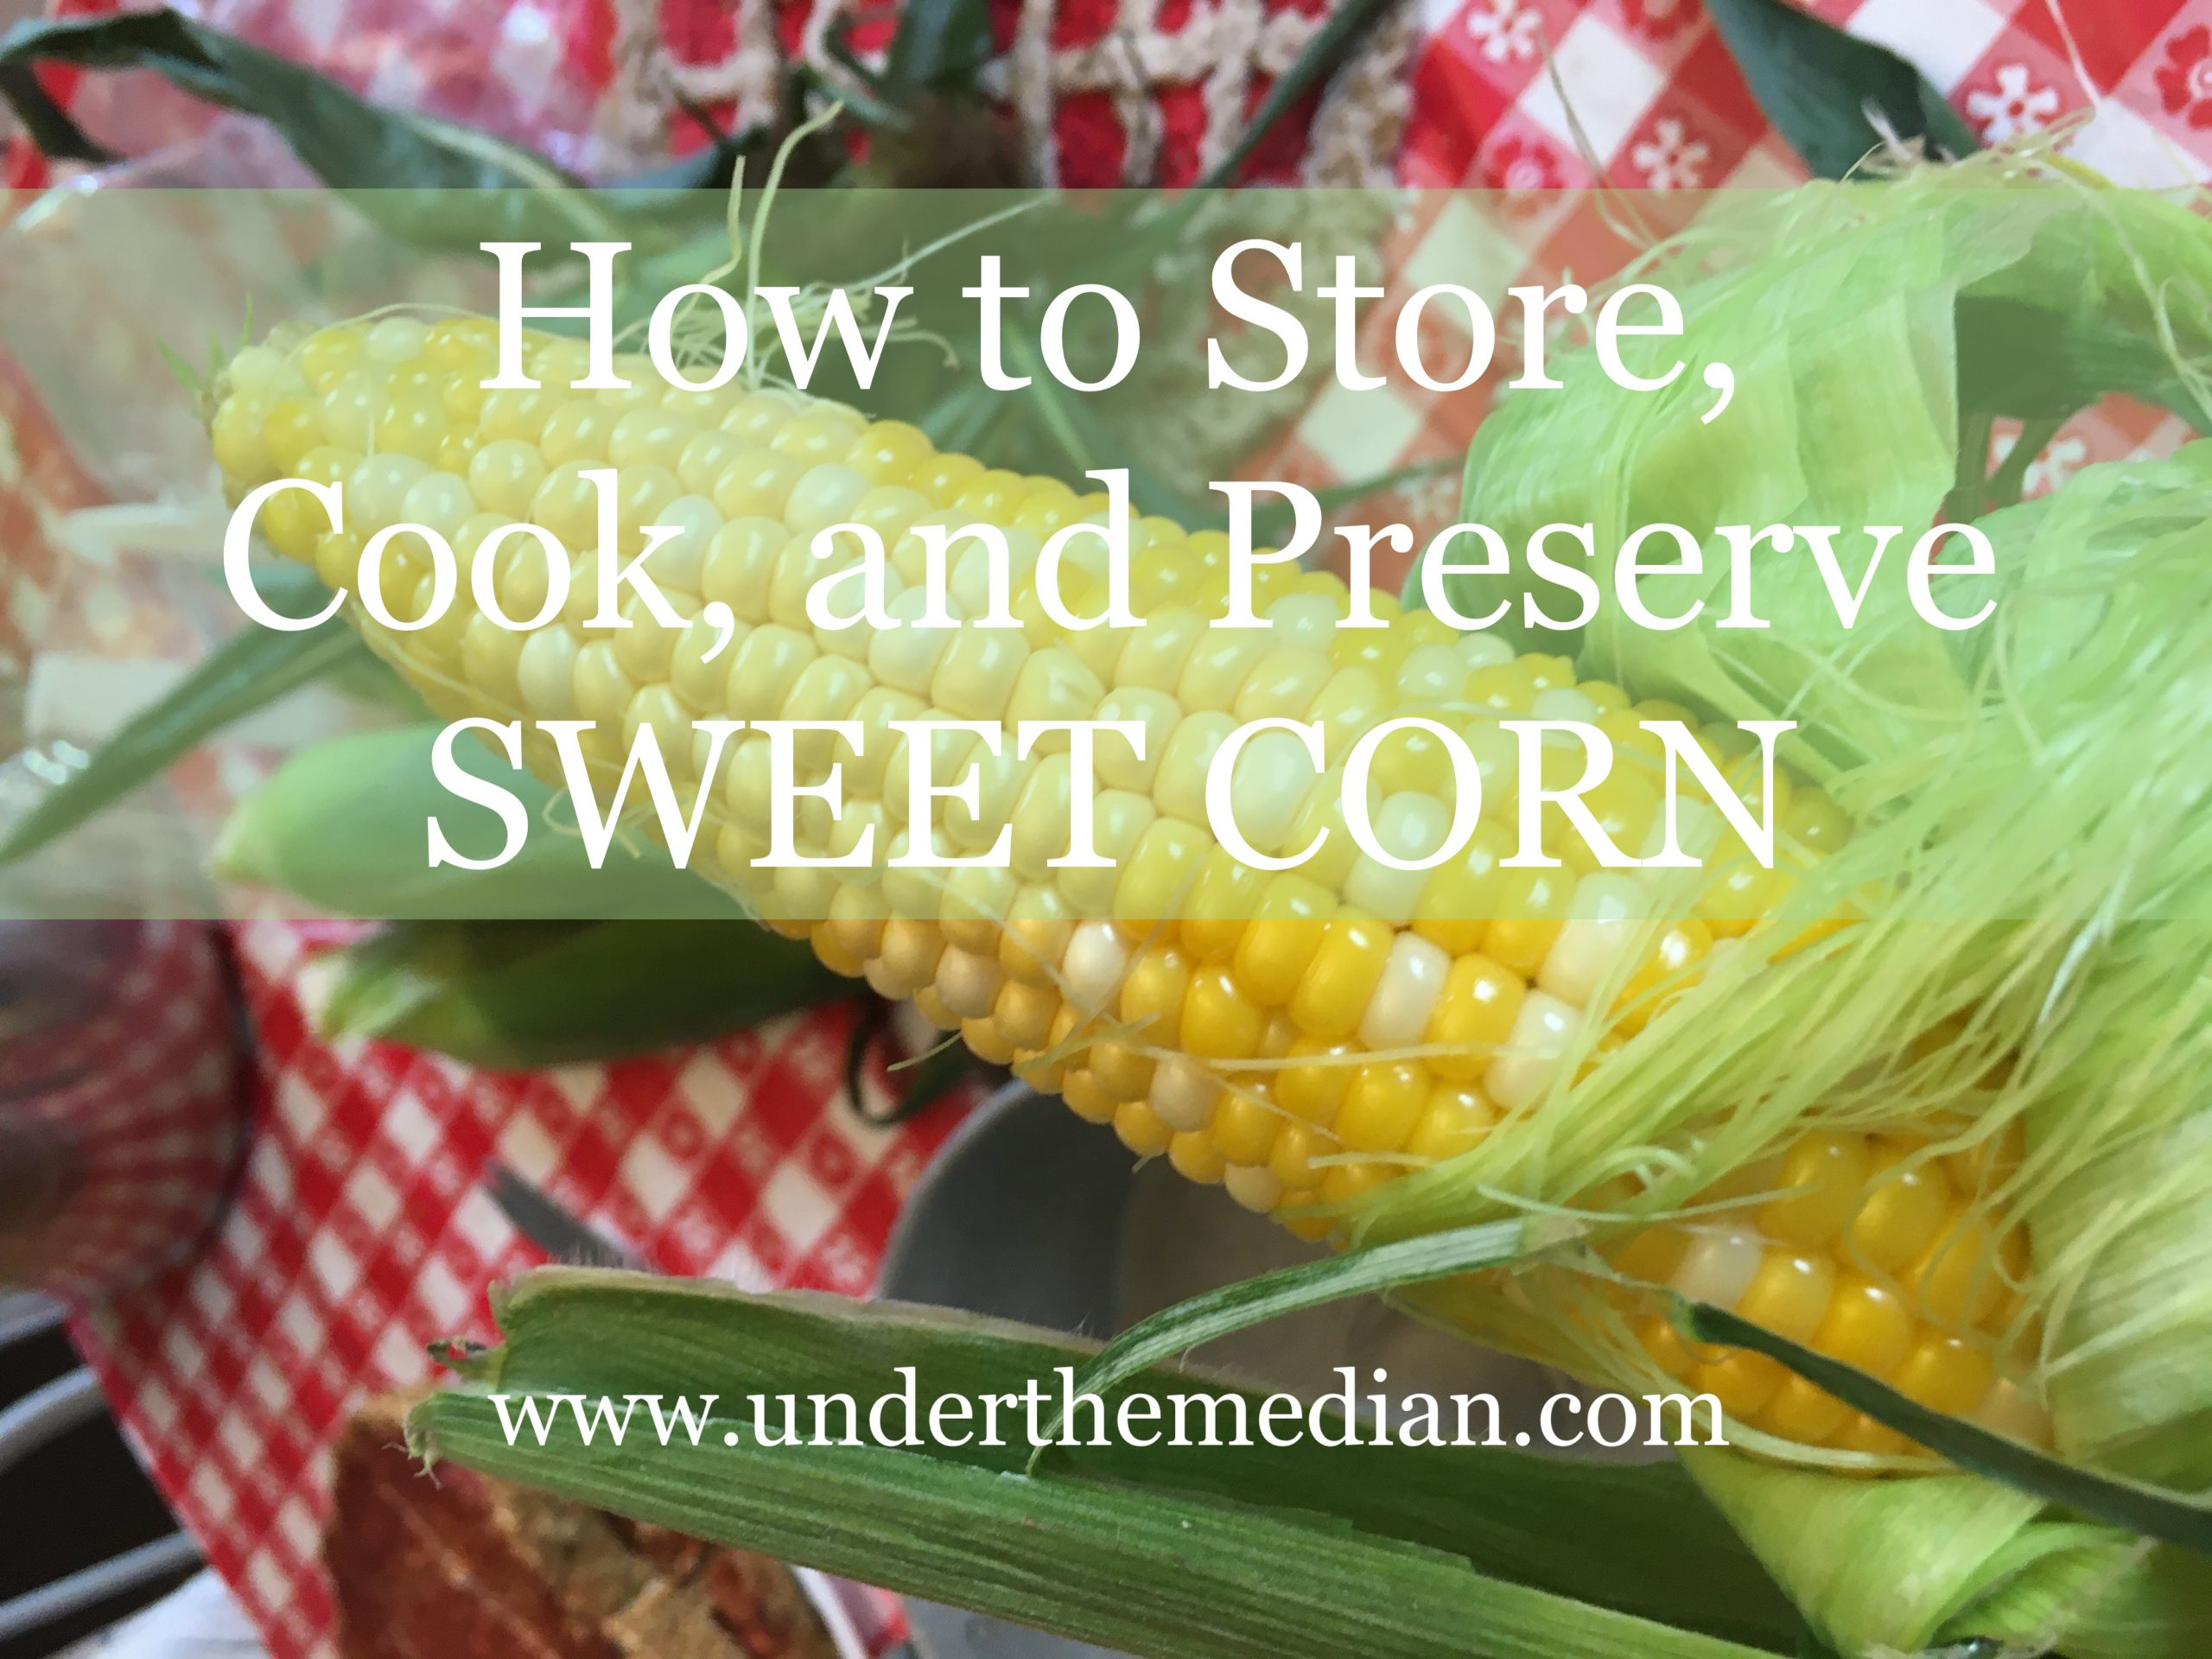 How to Store, Cook, and Preserve Sweet Corn